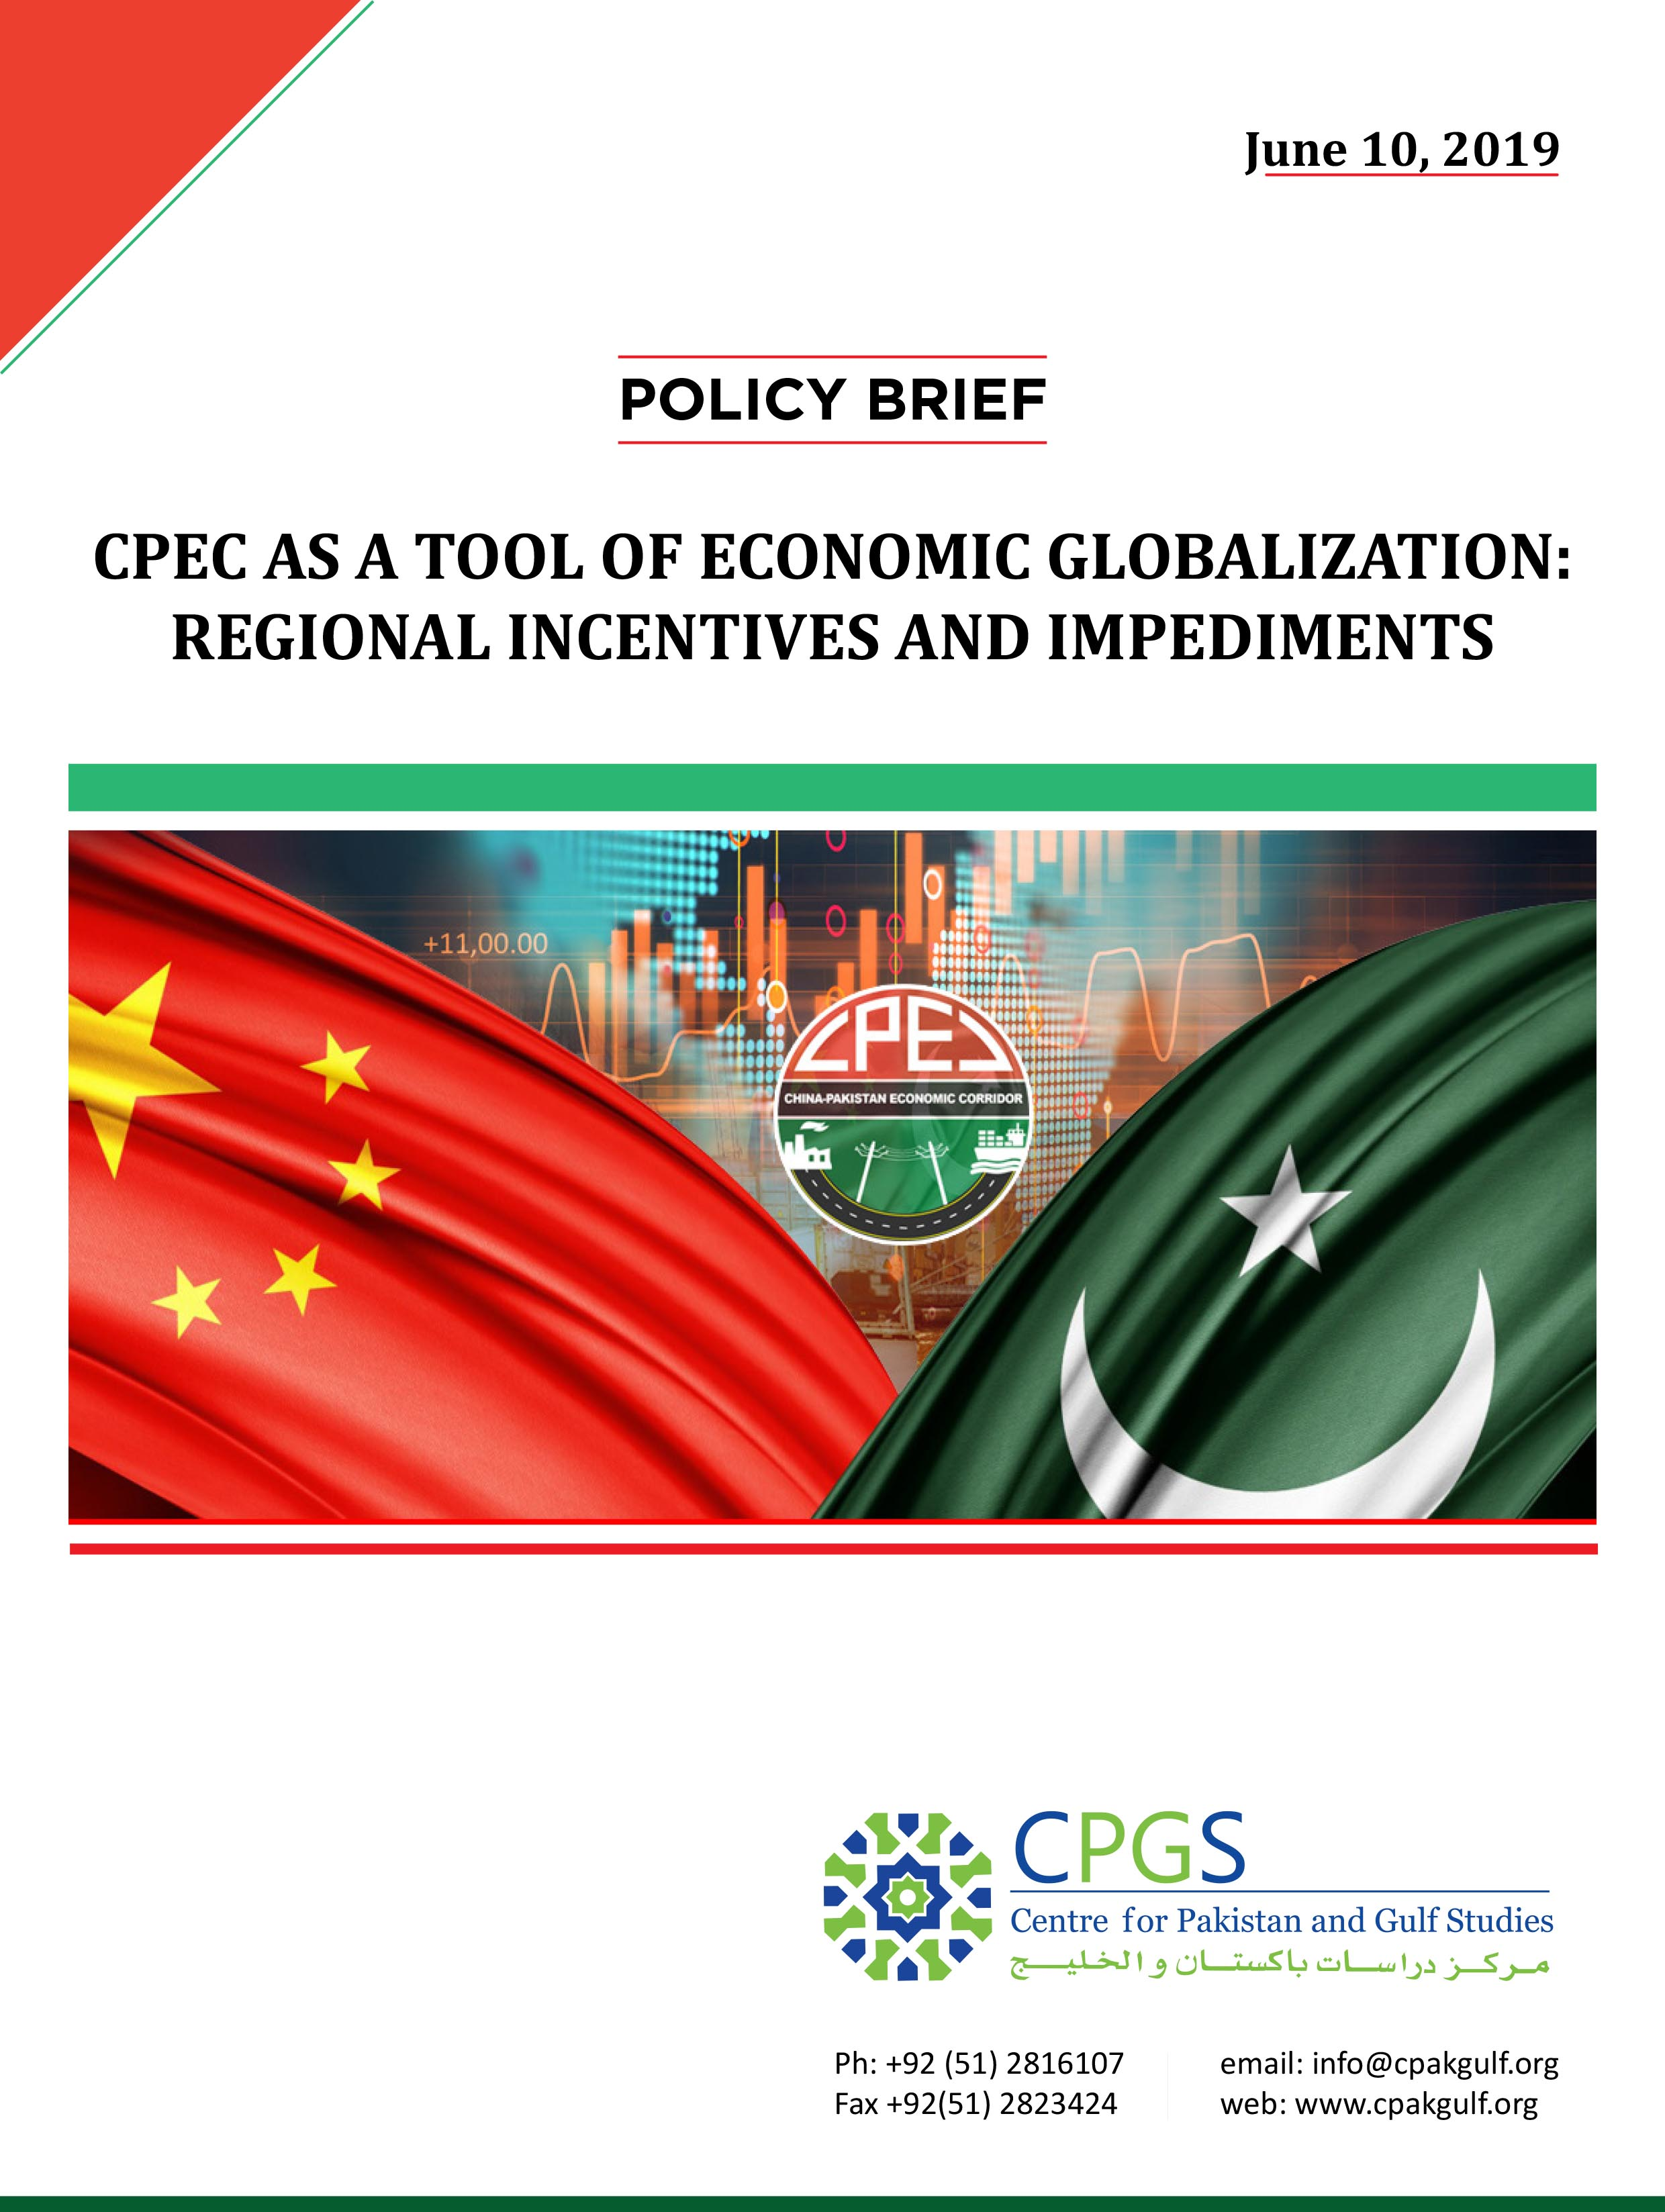 CPEC: DATA AND FACT SHEET